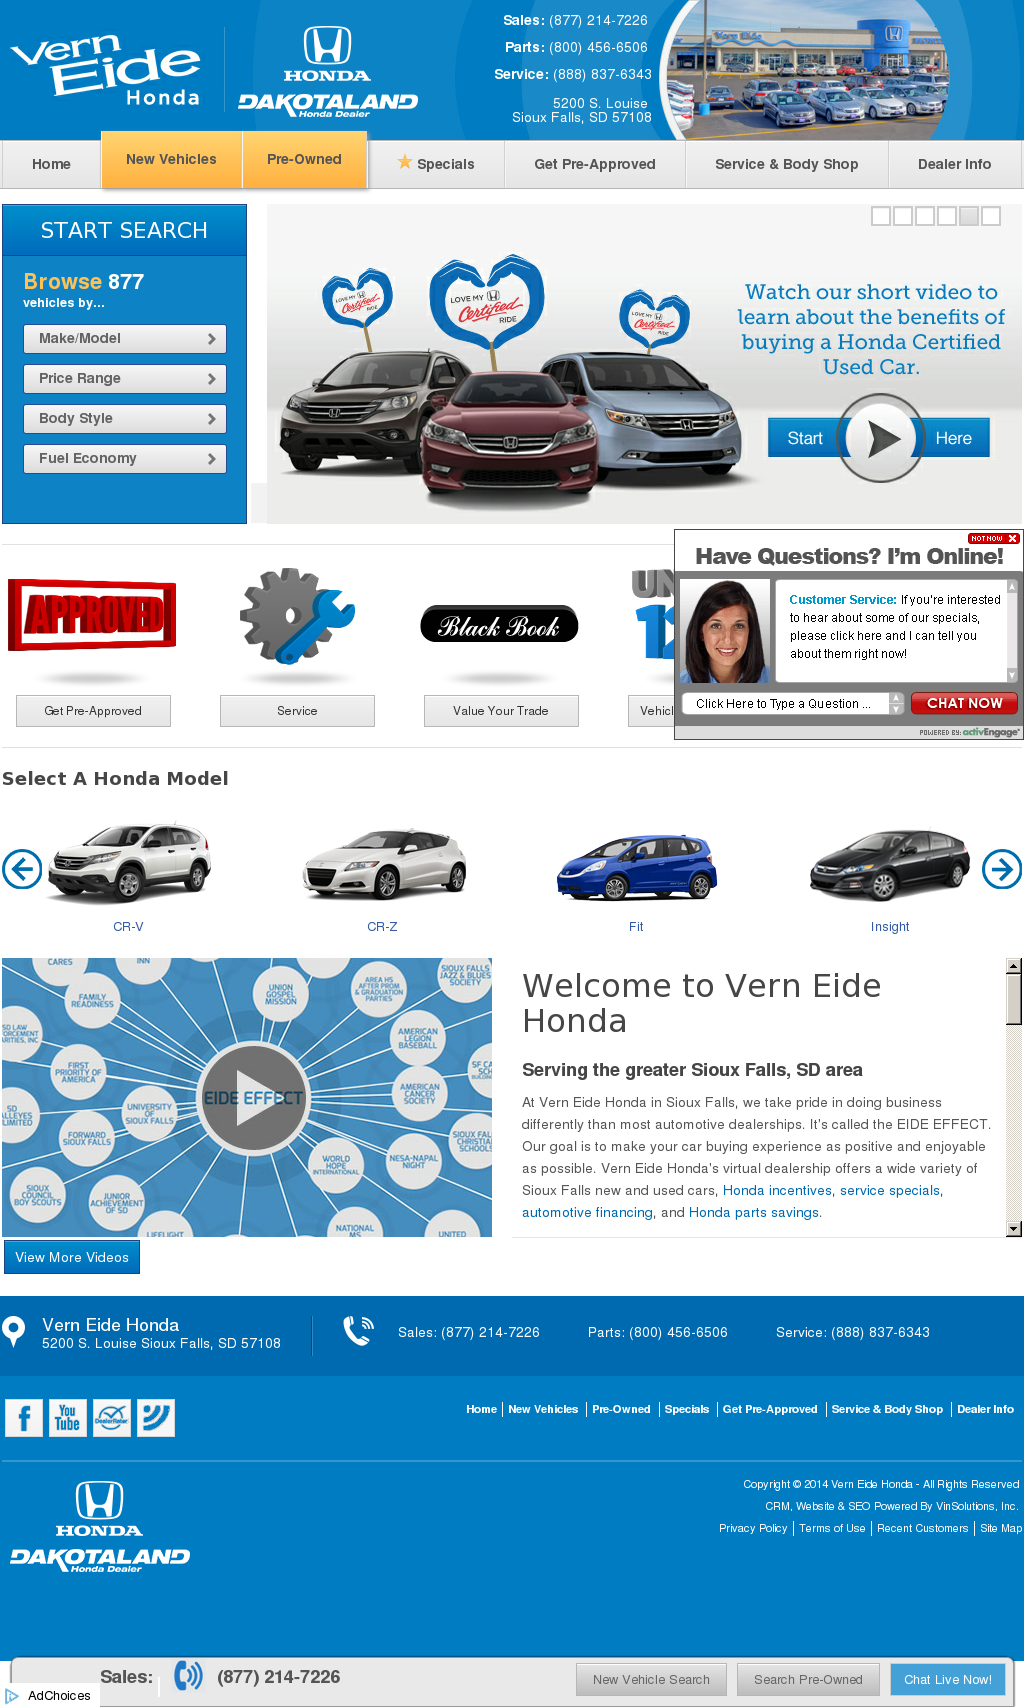 Vern Eide Honda Competitors, Revenue And Employees   Owler Company Profile